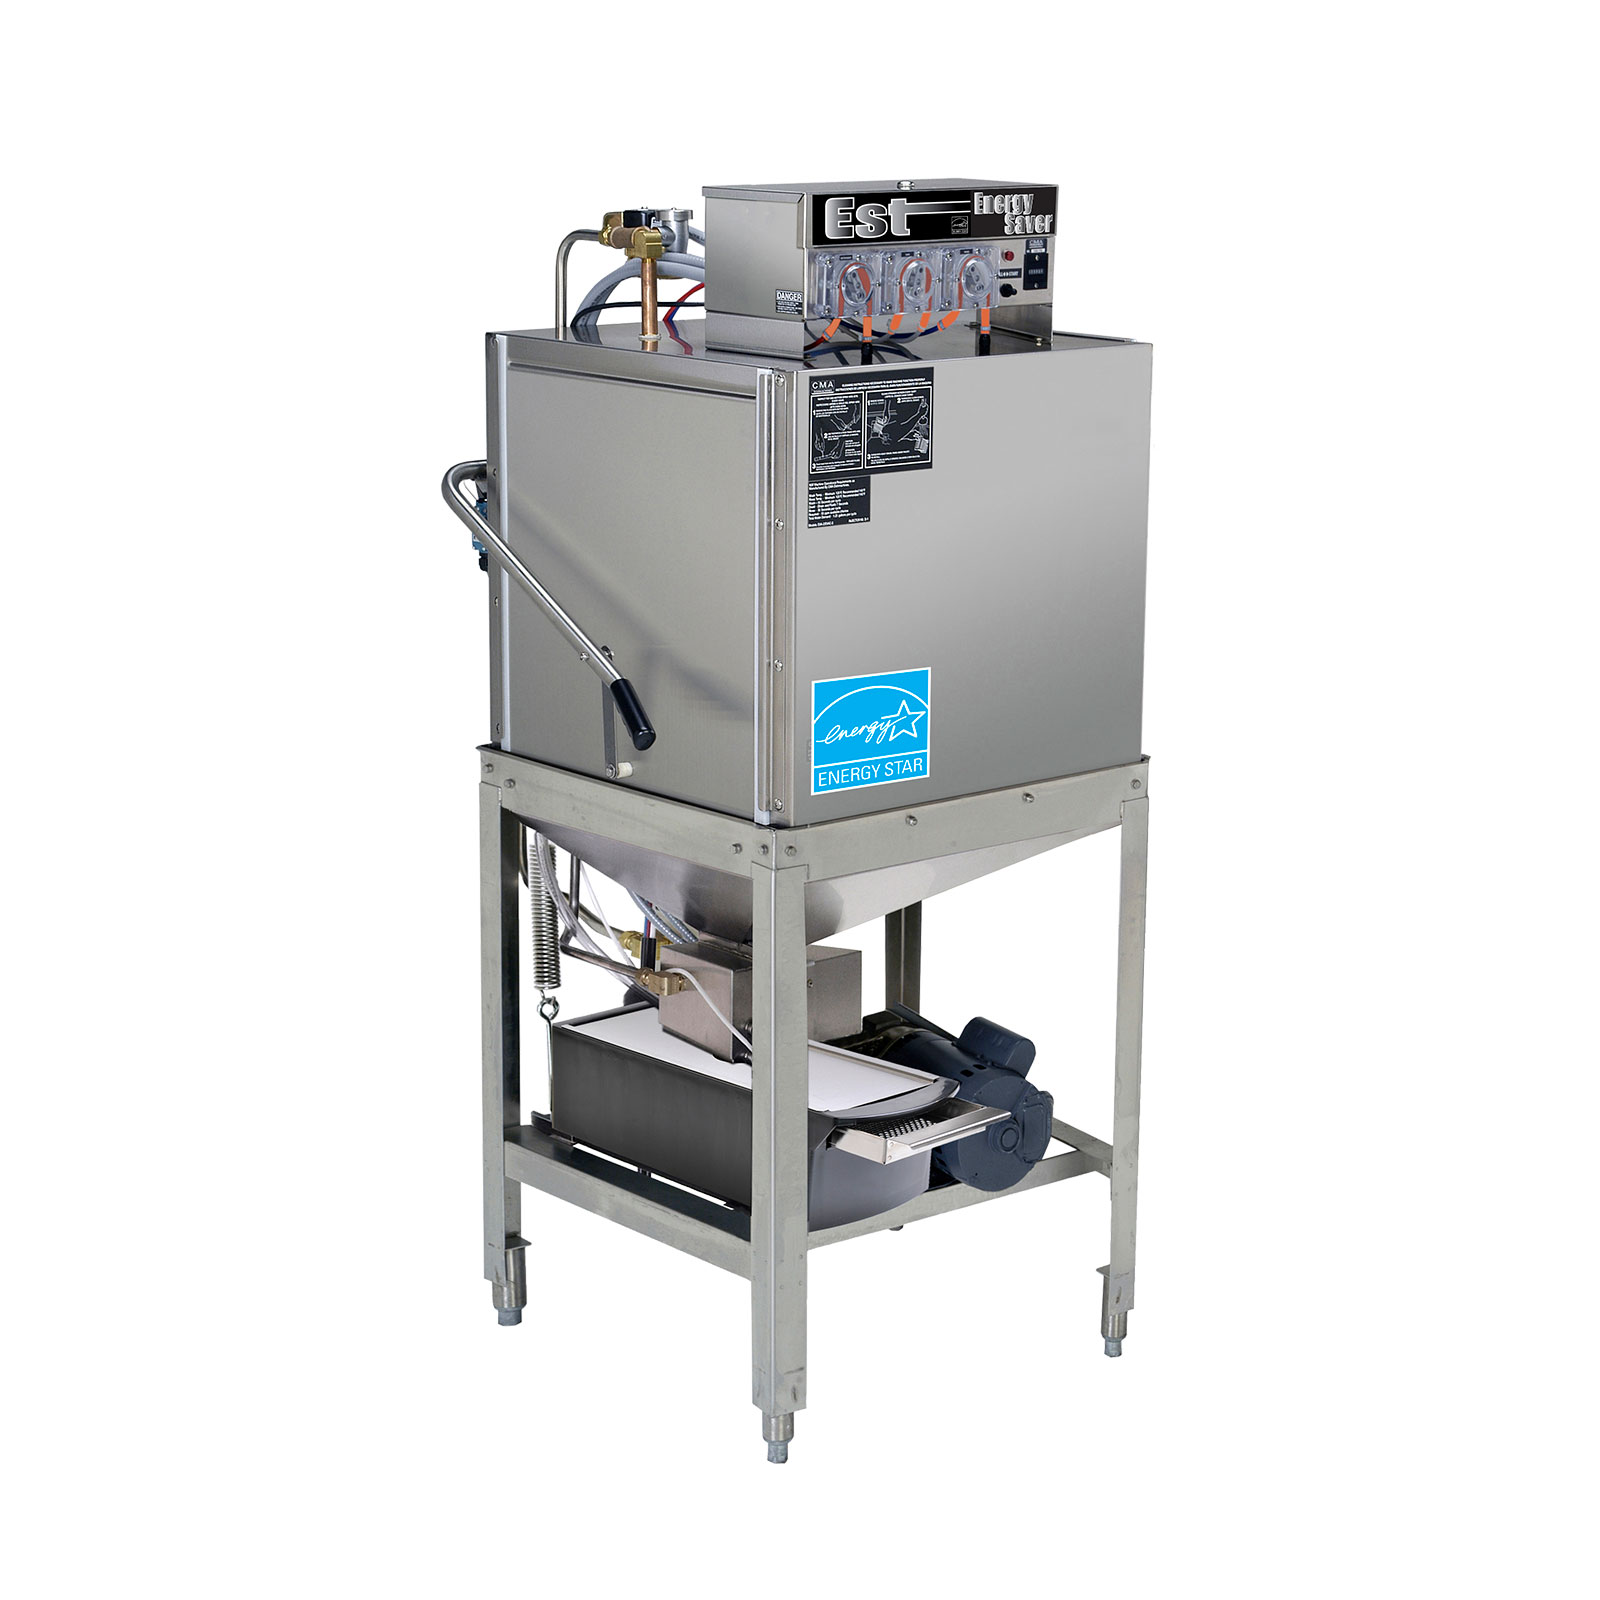 EST-AH CMA Dishmachines dishwasher, door type